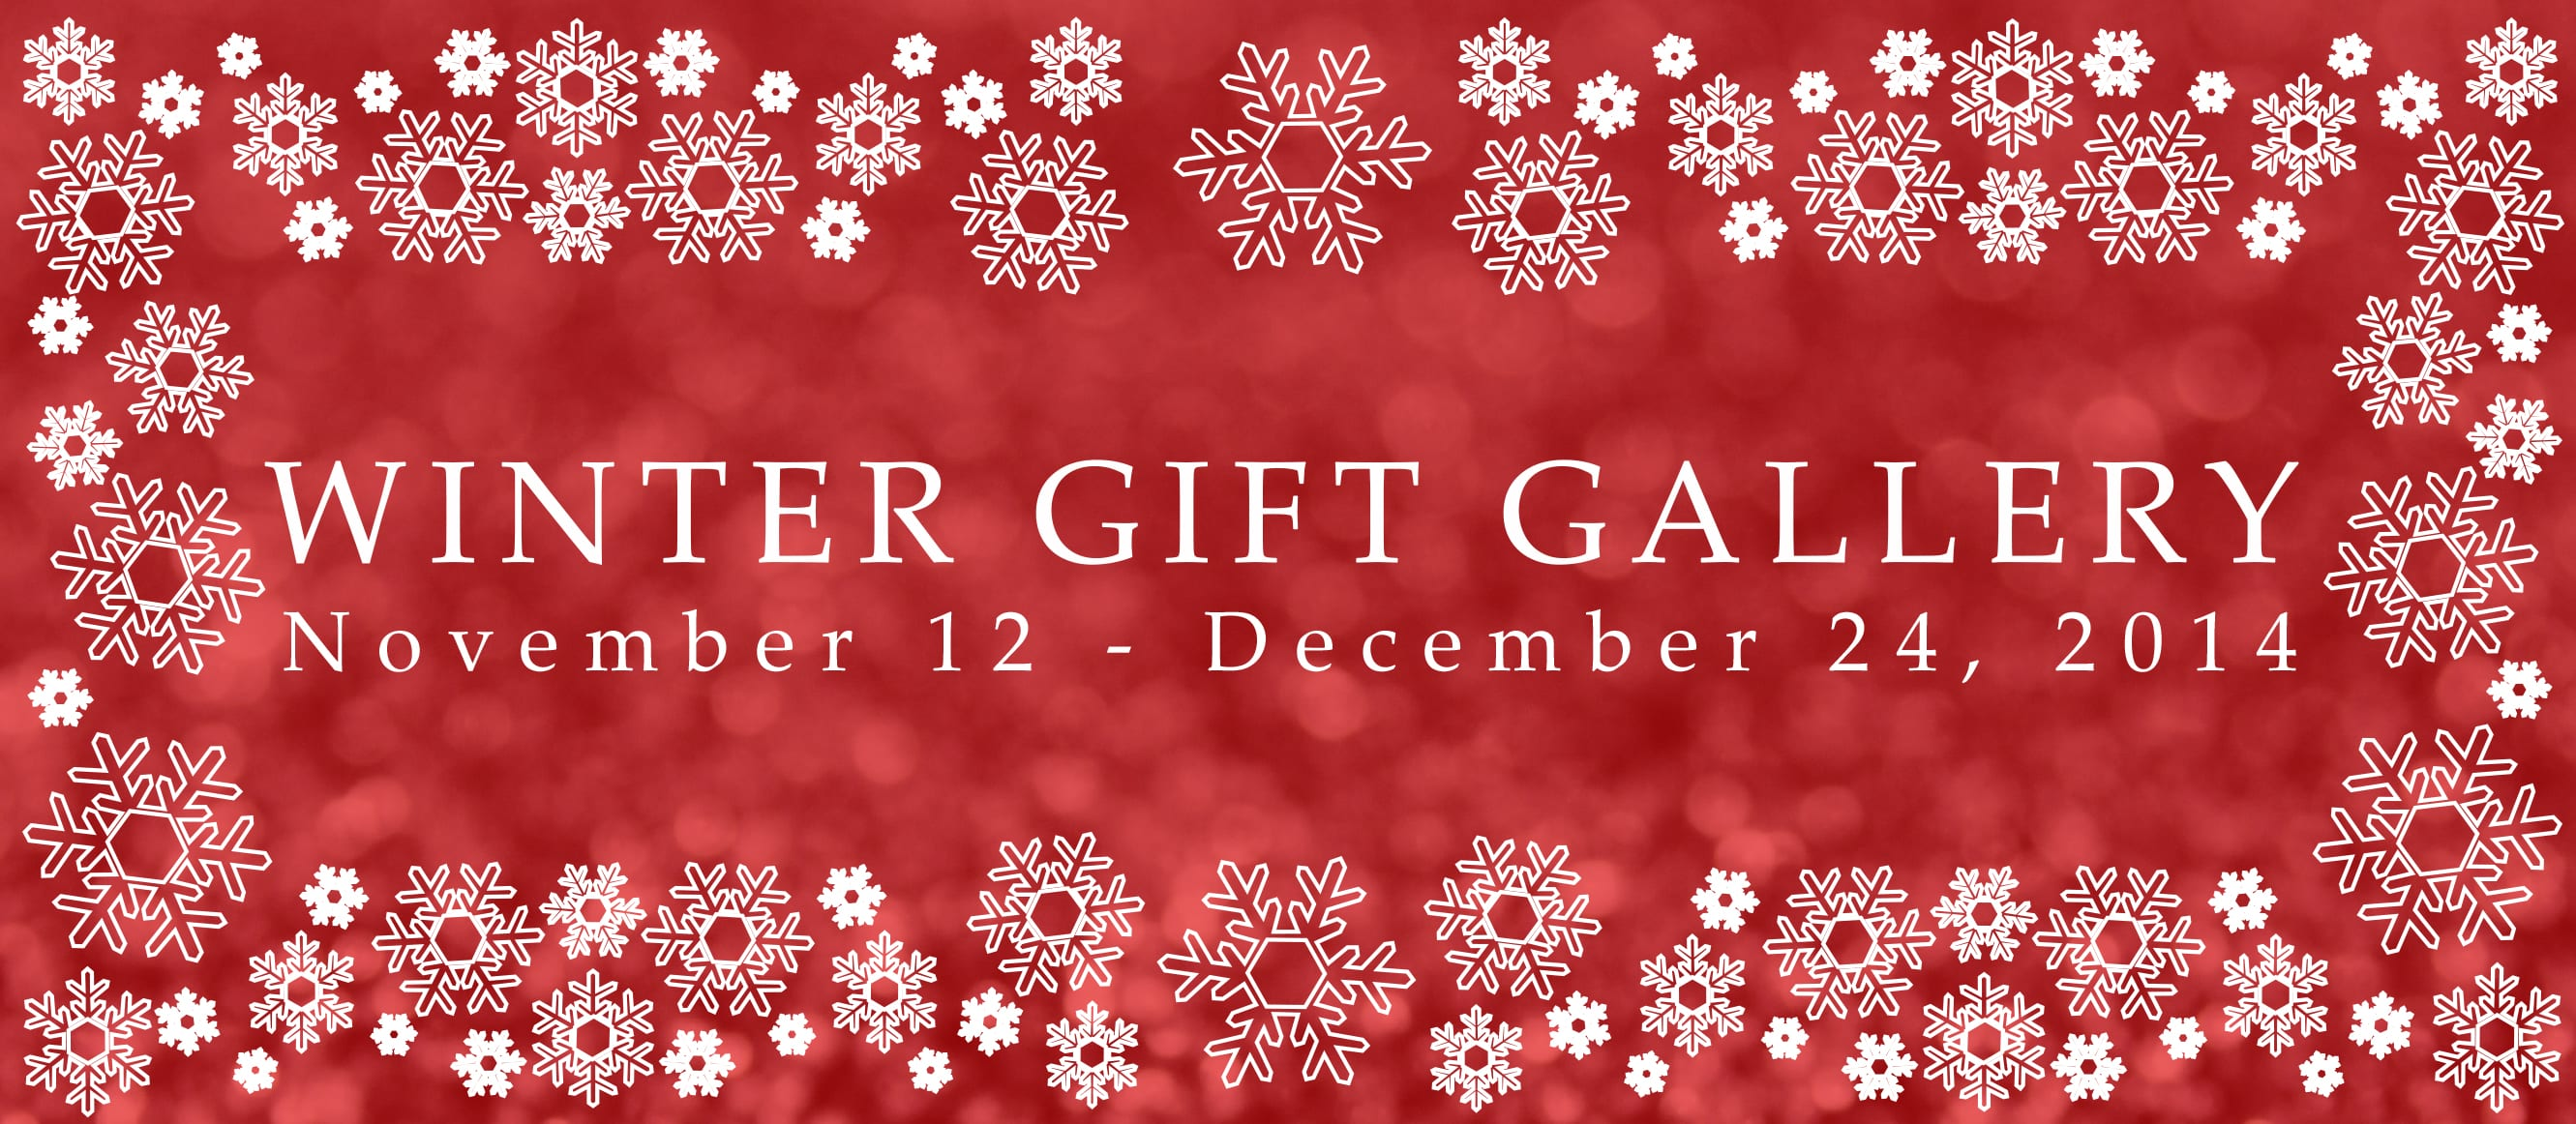 Winter Gift Gallery at the Seymour Art Gallery Deep Cove